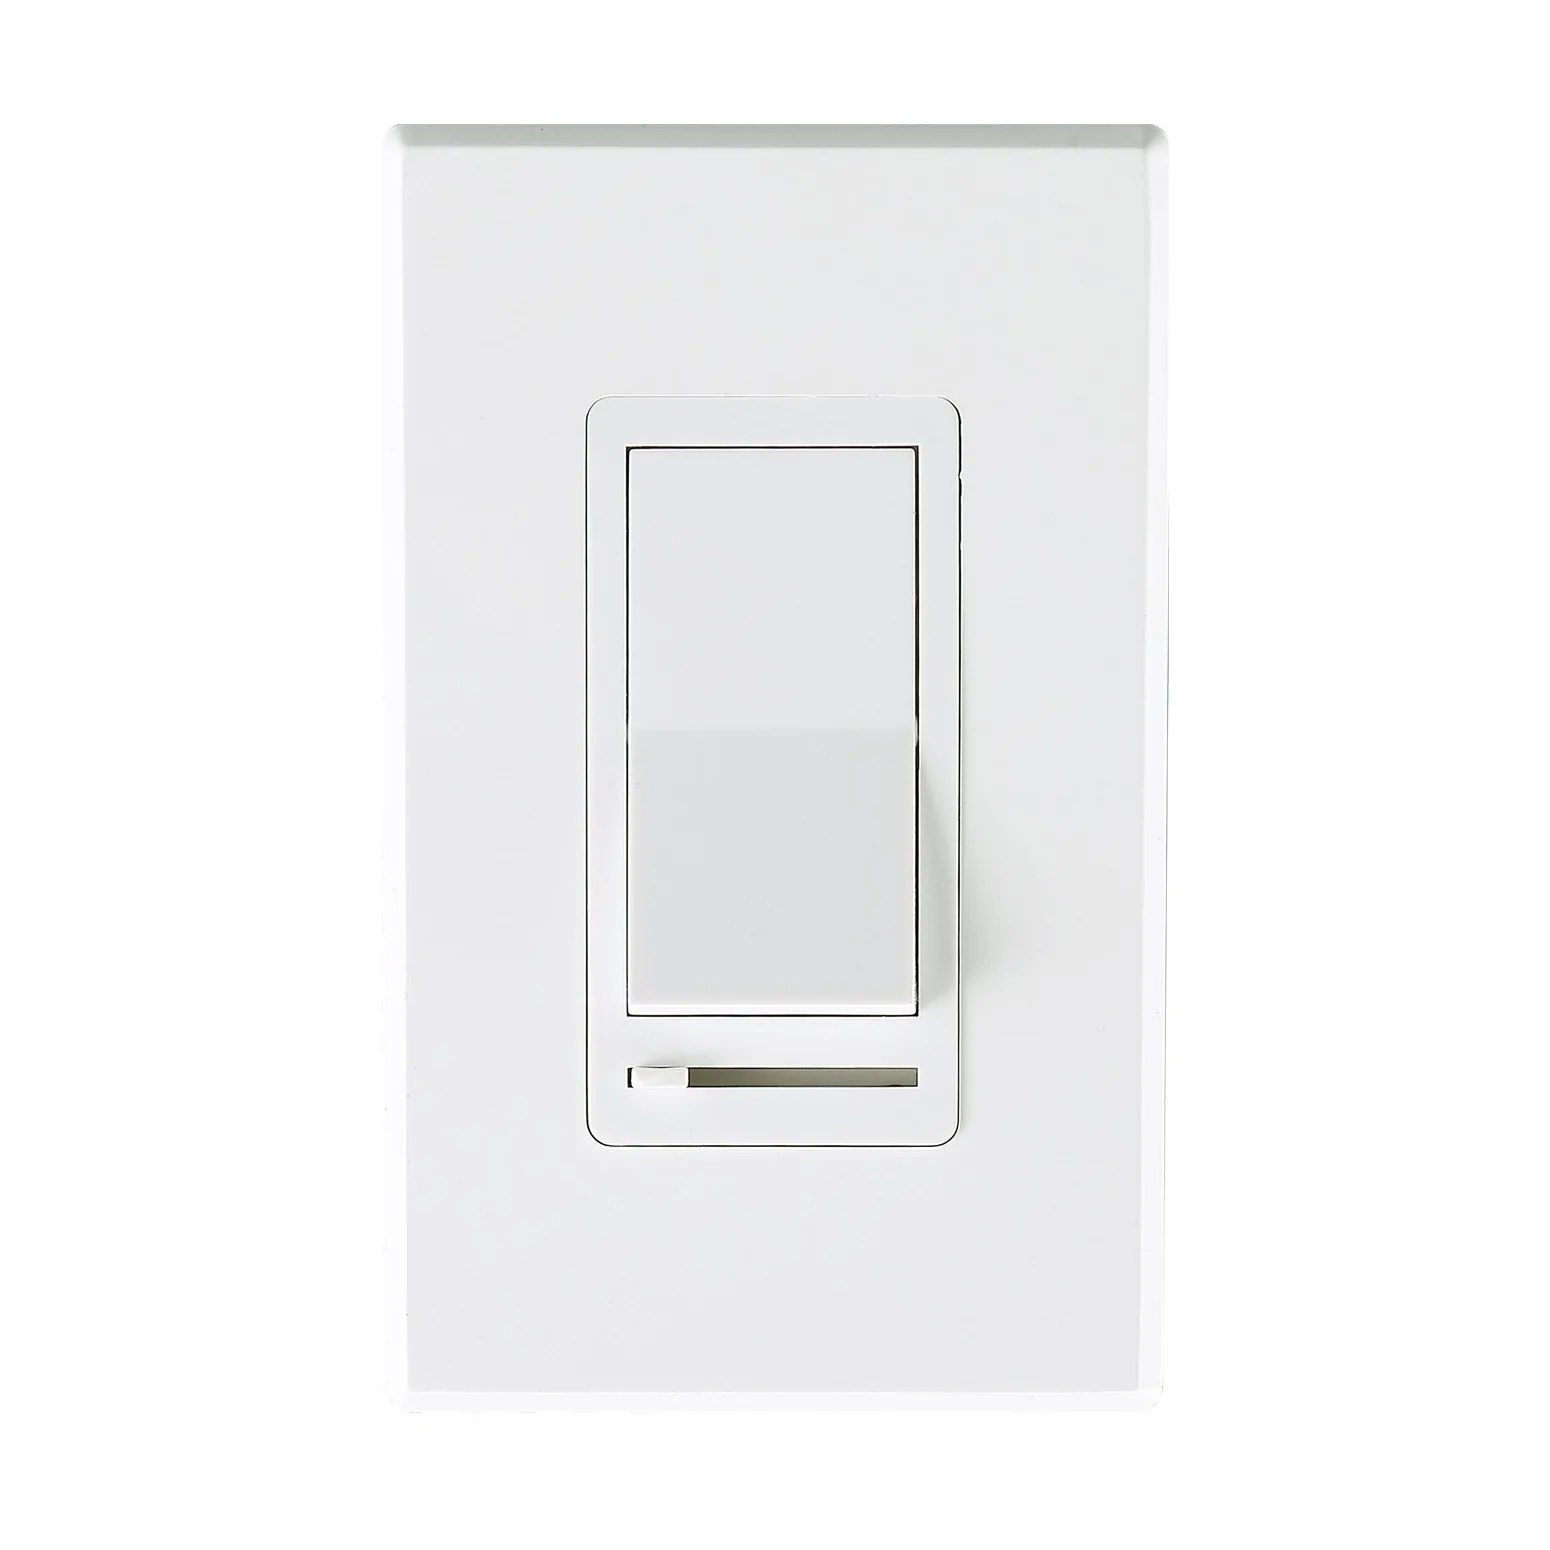 cloudybay in wall dimmer switch for led light cfl incandescent 3 way title [ 1550 x 1550 Pixel ]